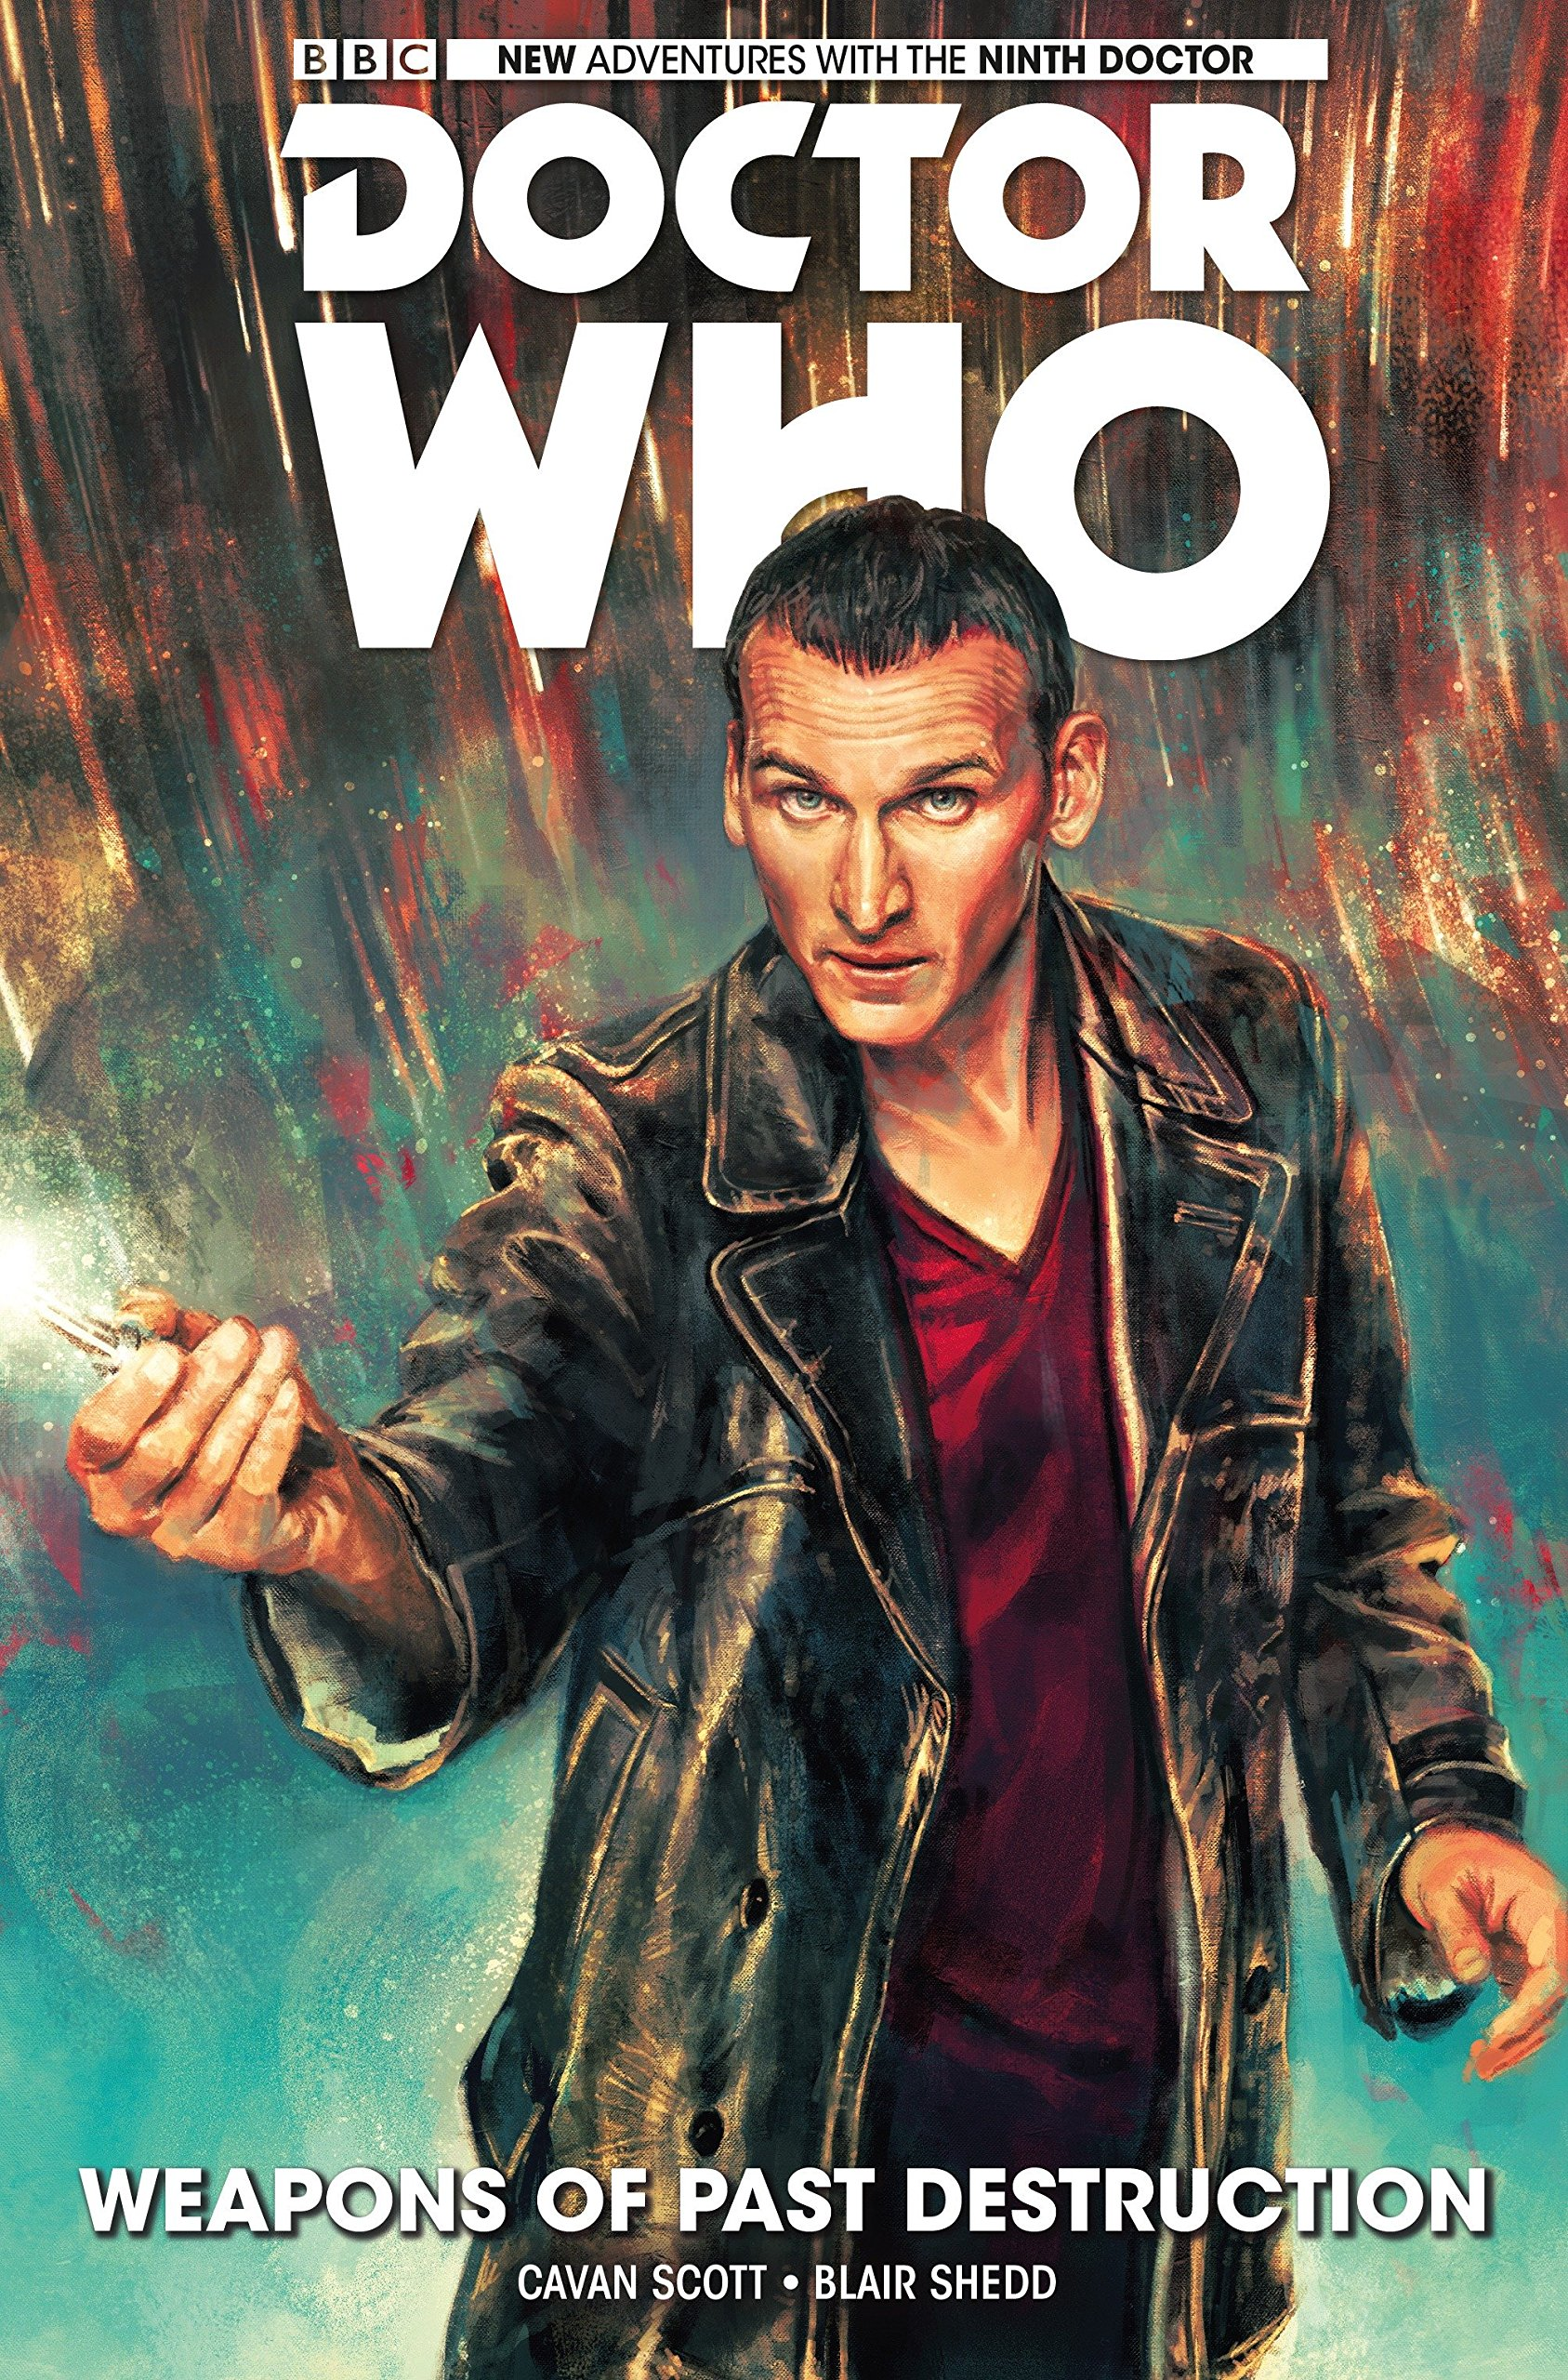 Doctor Who: The Ninth Doctor Volume 1 - Weapons of Past